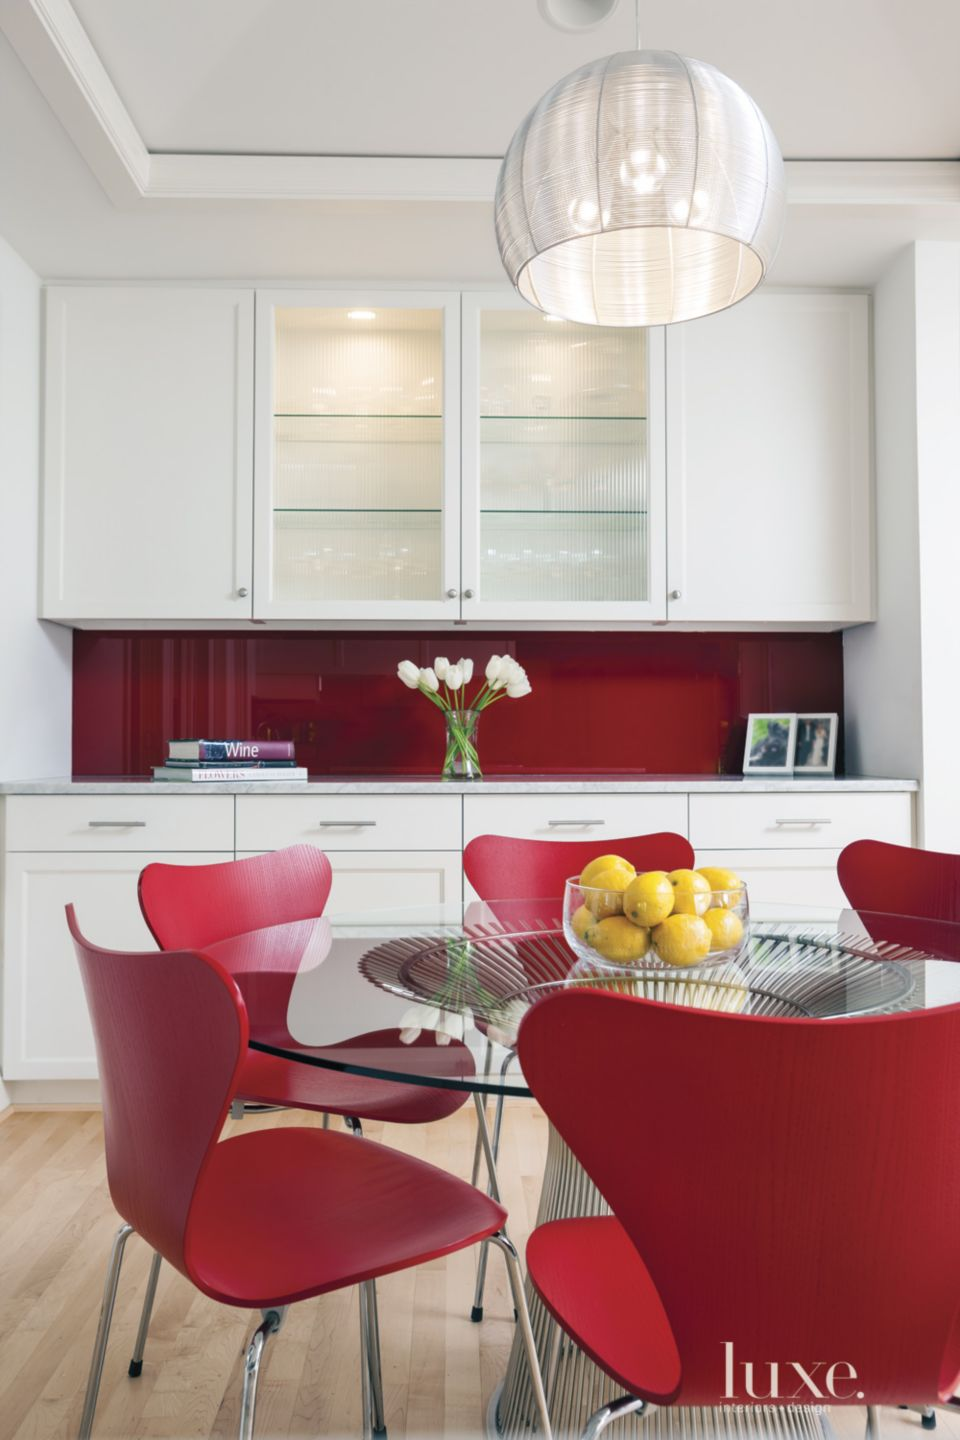 Modern White Kitchen with Red Chairs